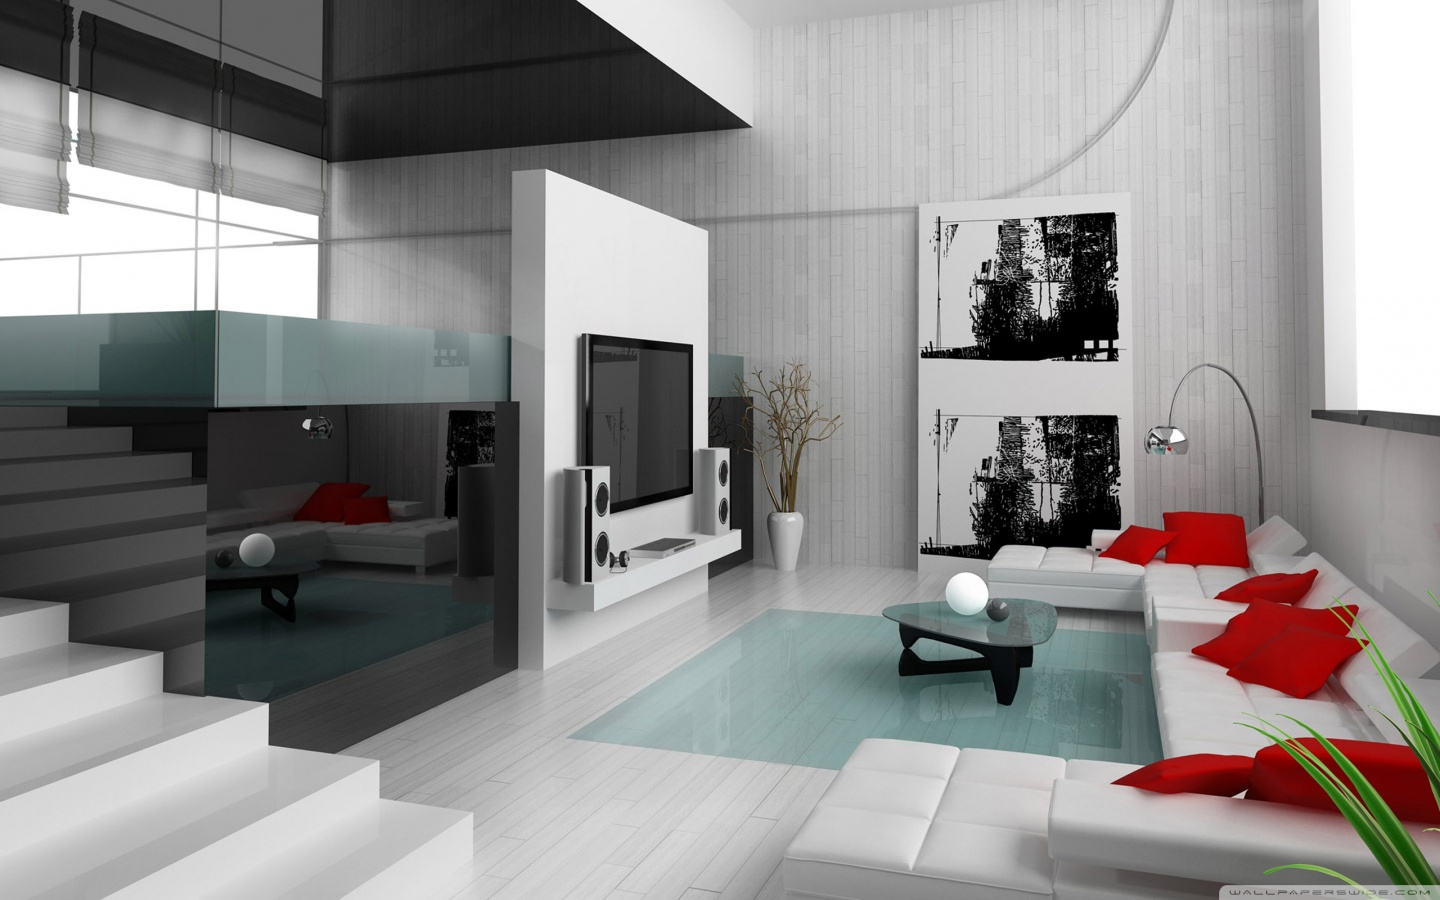 Minimalist interior design imagination art architecture for Architecture design house interior